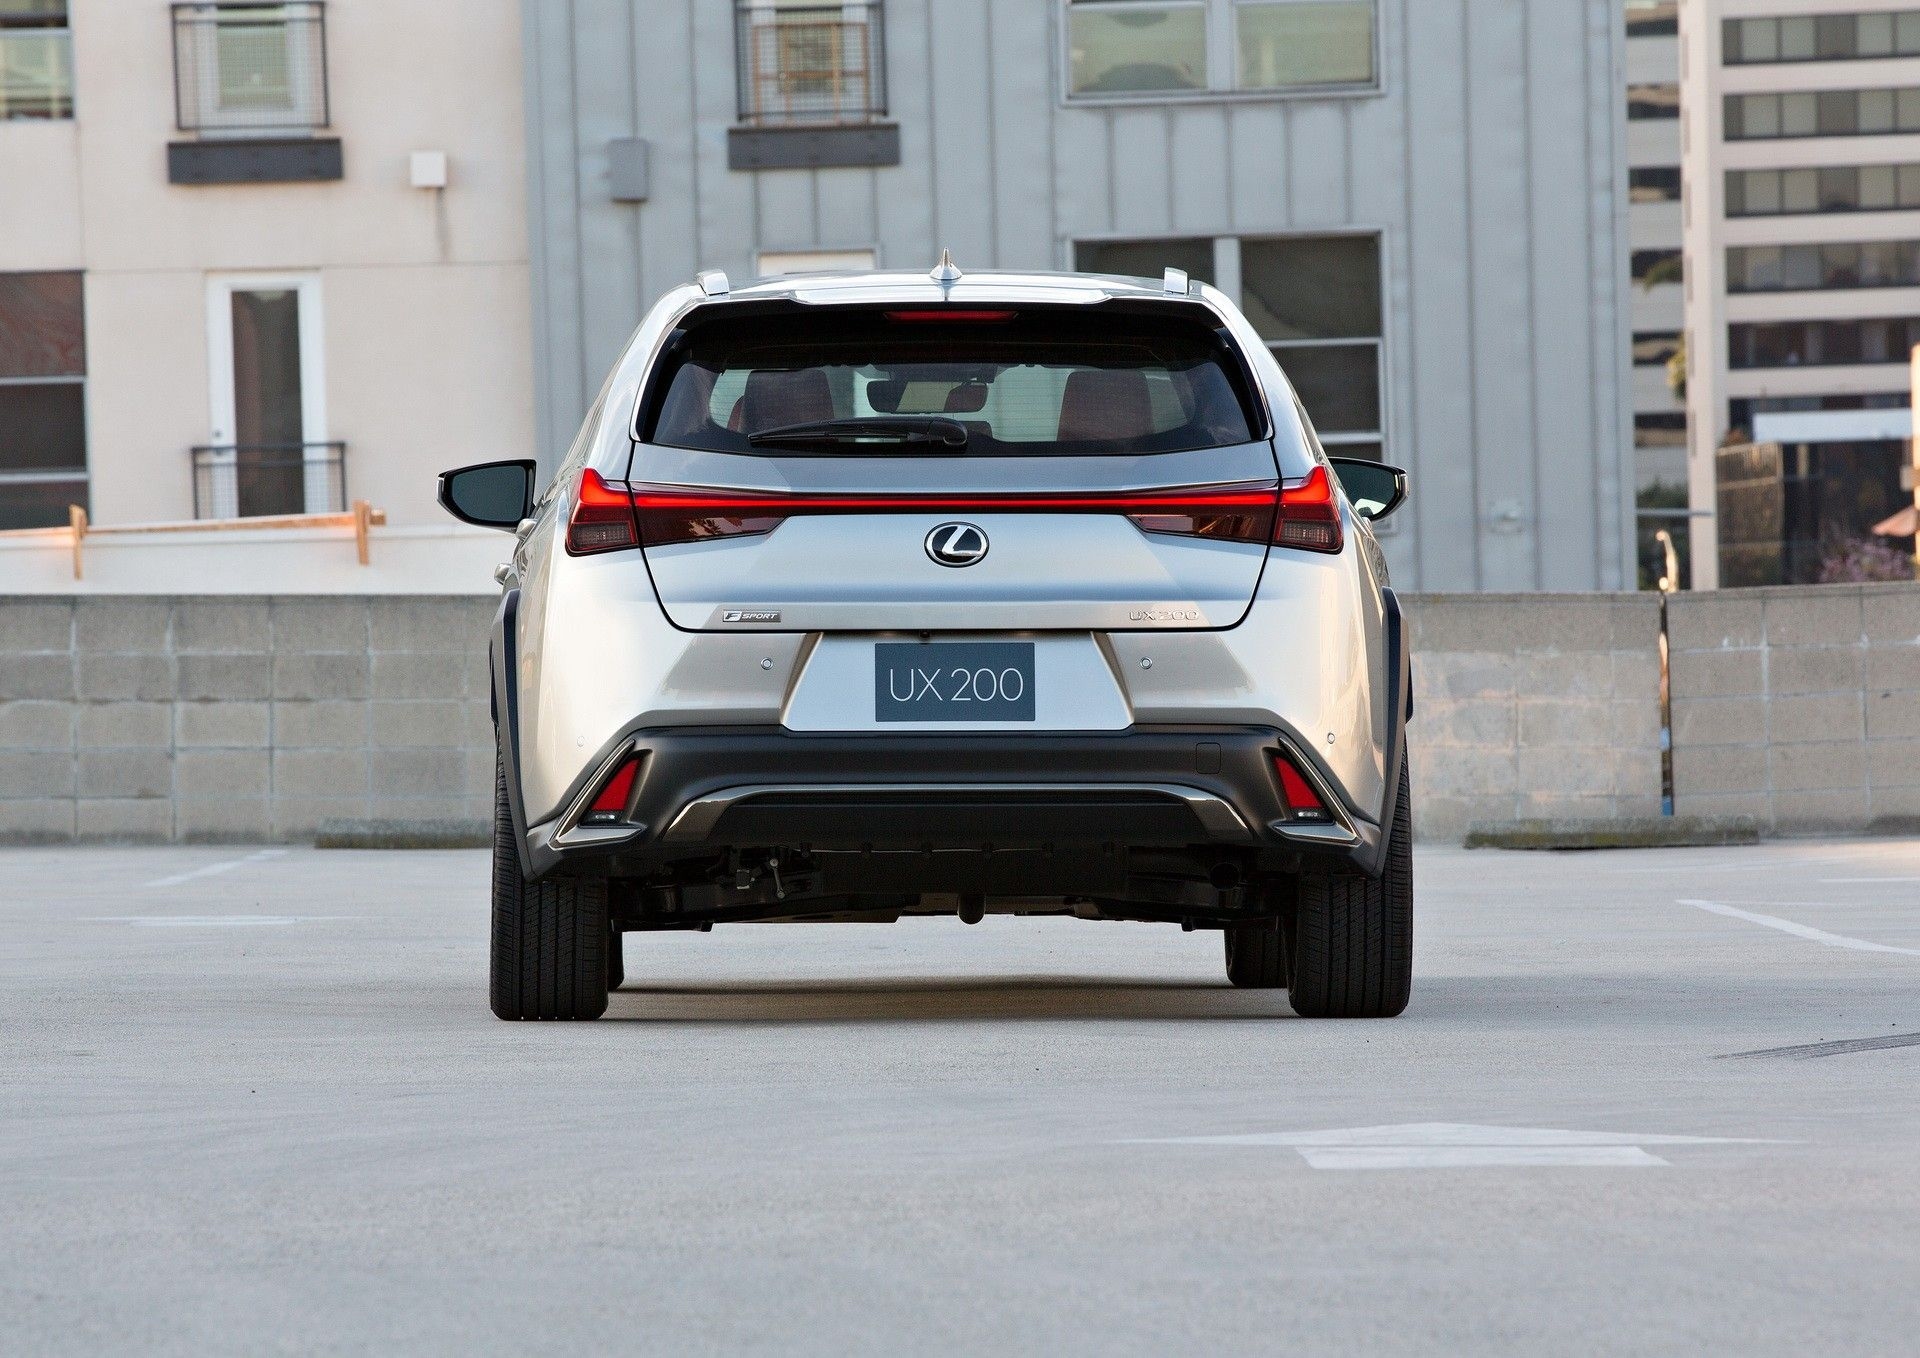 2019 Lexus Ux Revealed Release Date Price First Look Review Specs